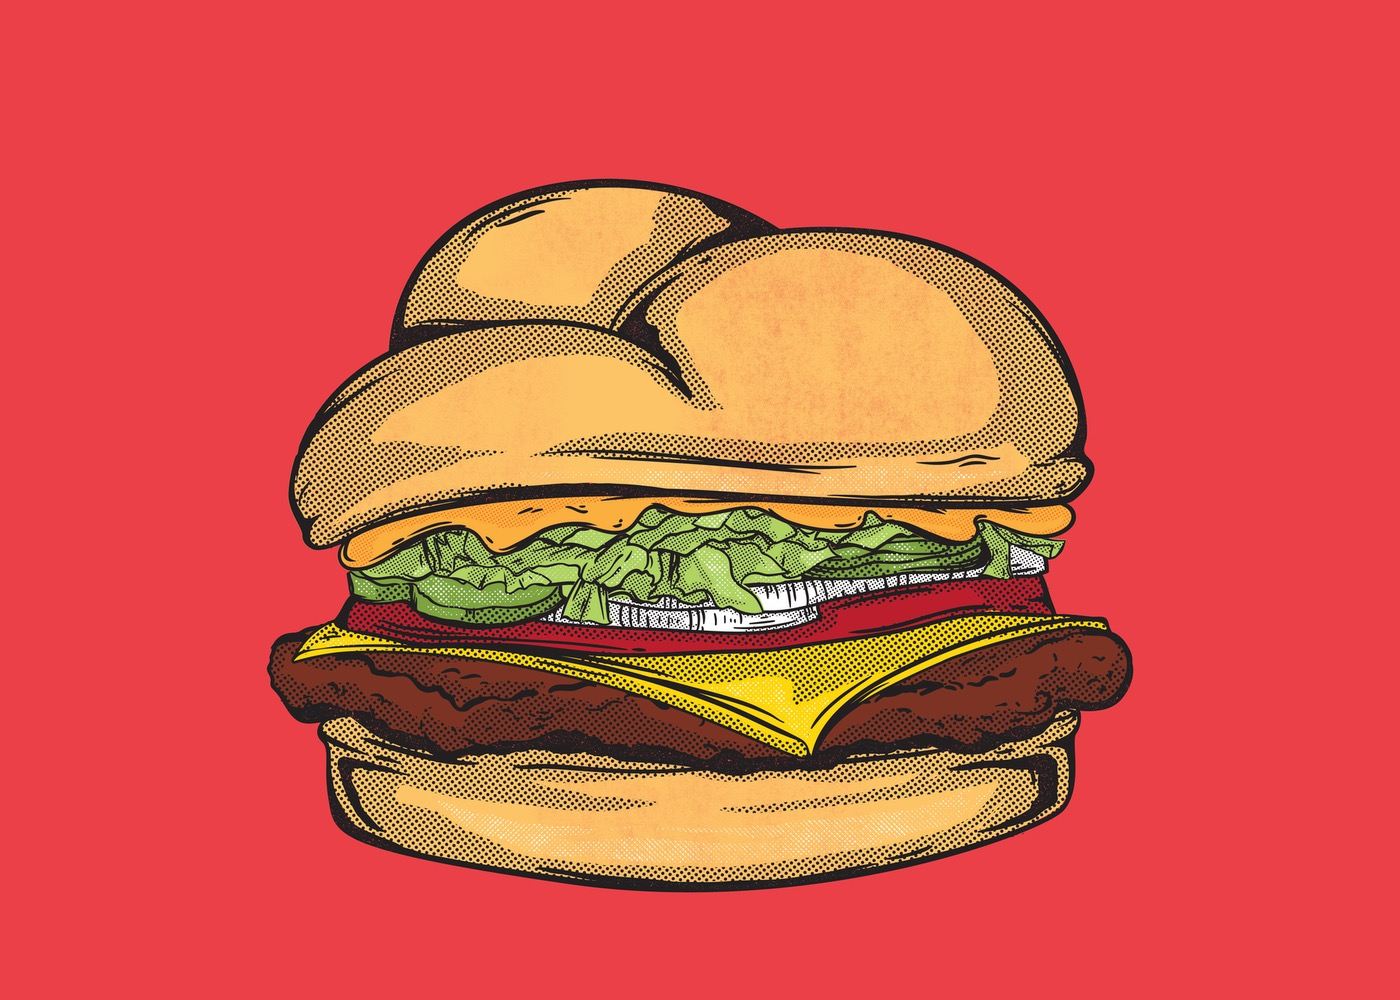 Drawing of burger on red background